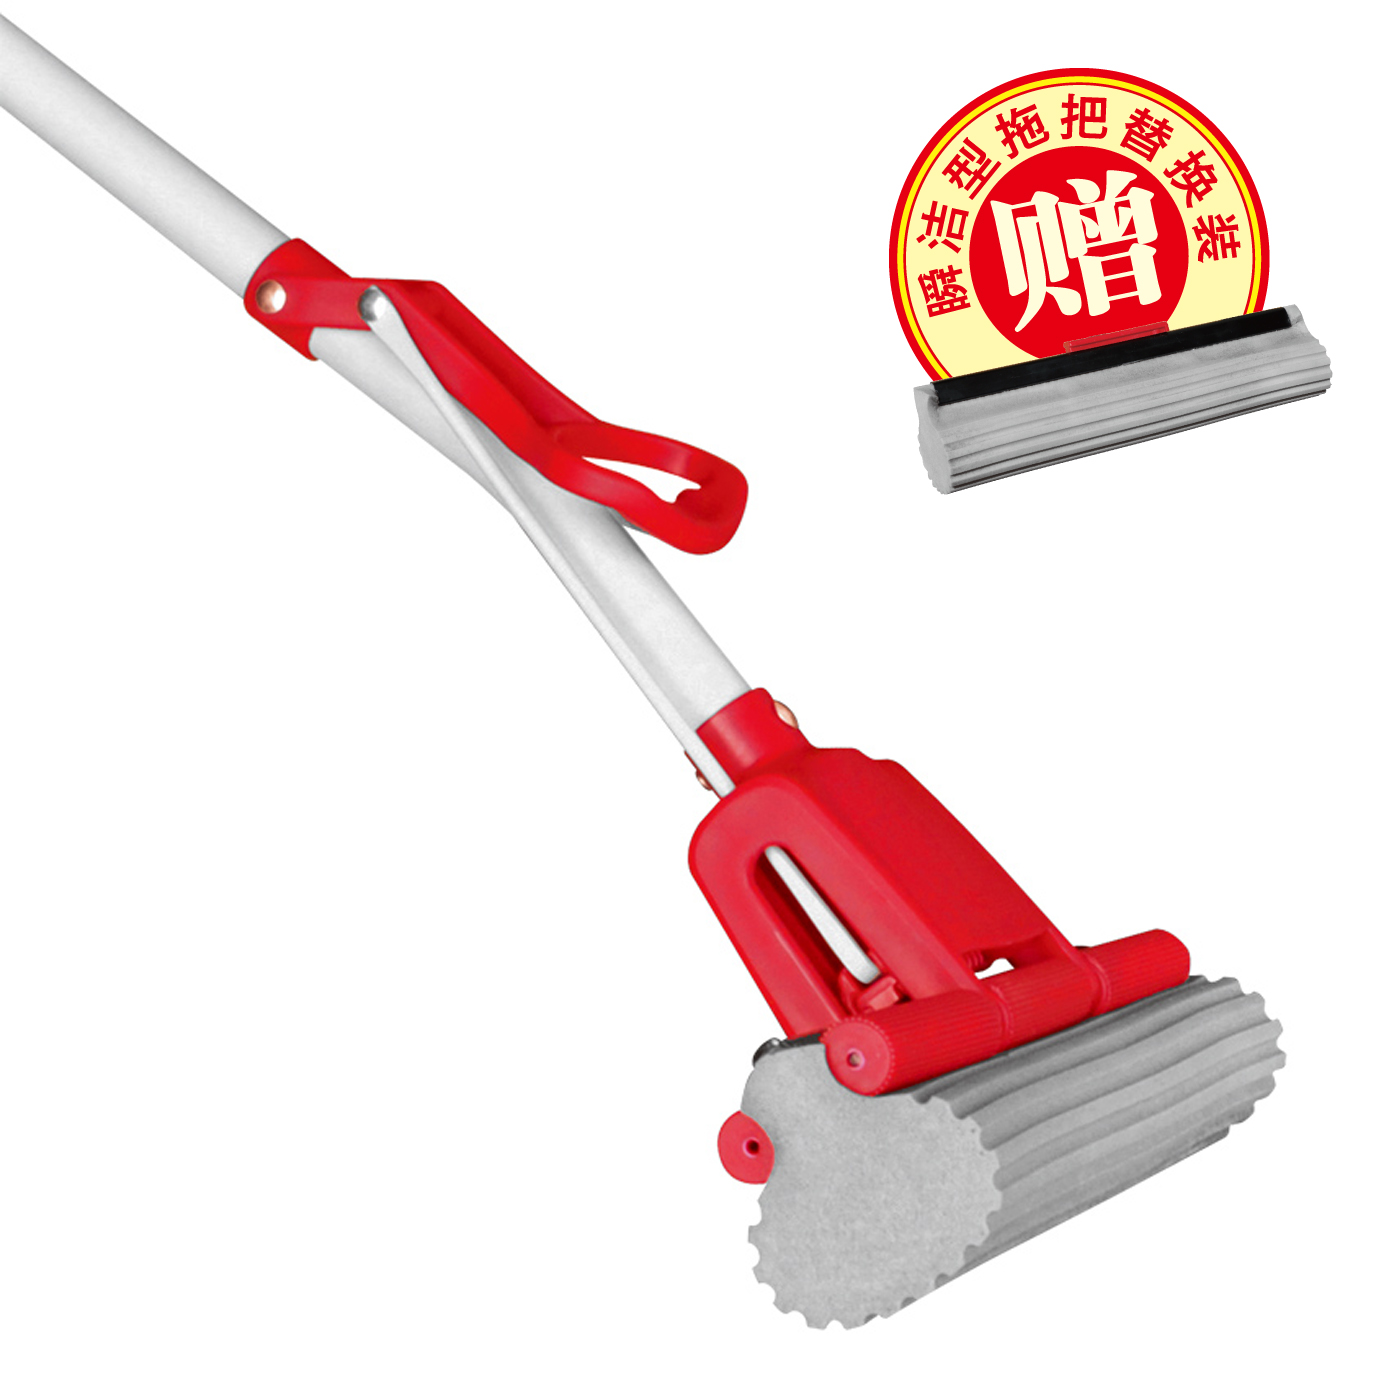 Yekee/yi yi jie cleaning roller glue cotton mop squeeze mop water absorbent sponge mop to mop mop mop head package Shipping